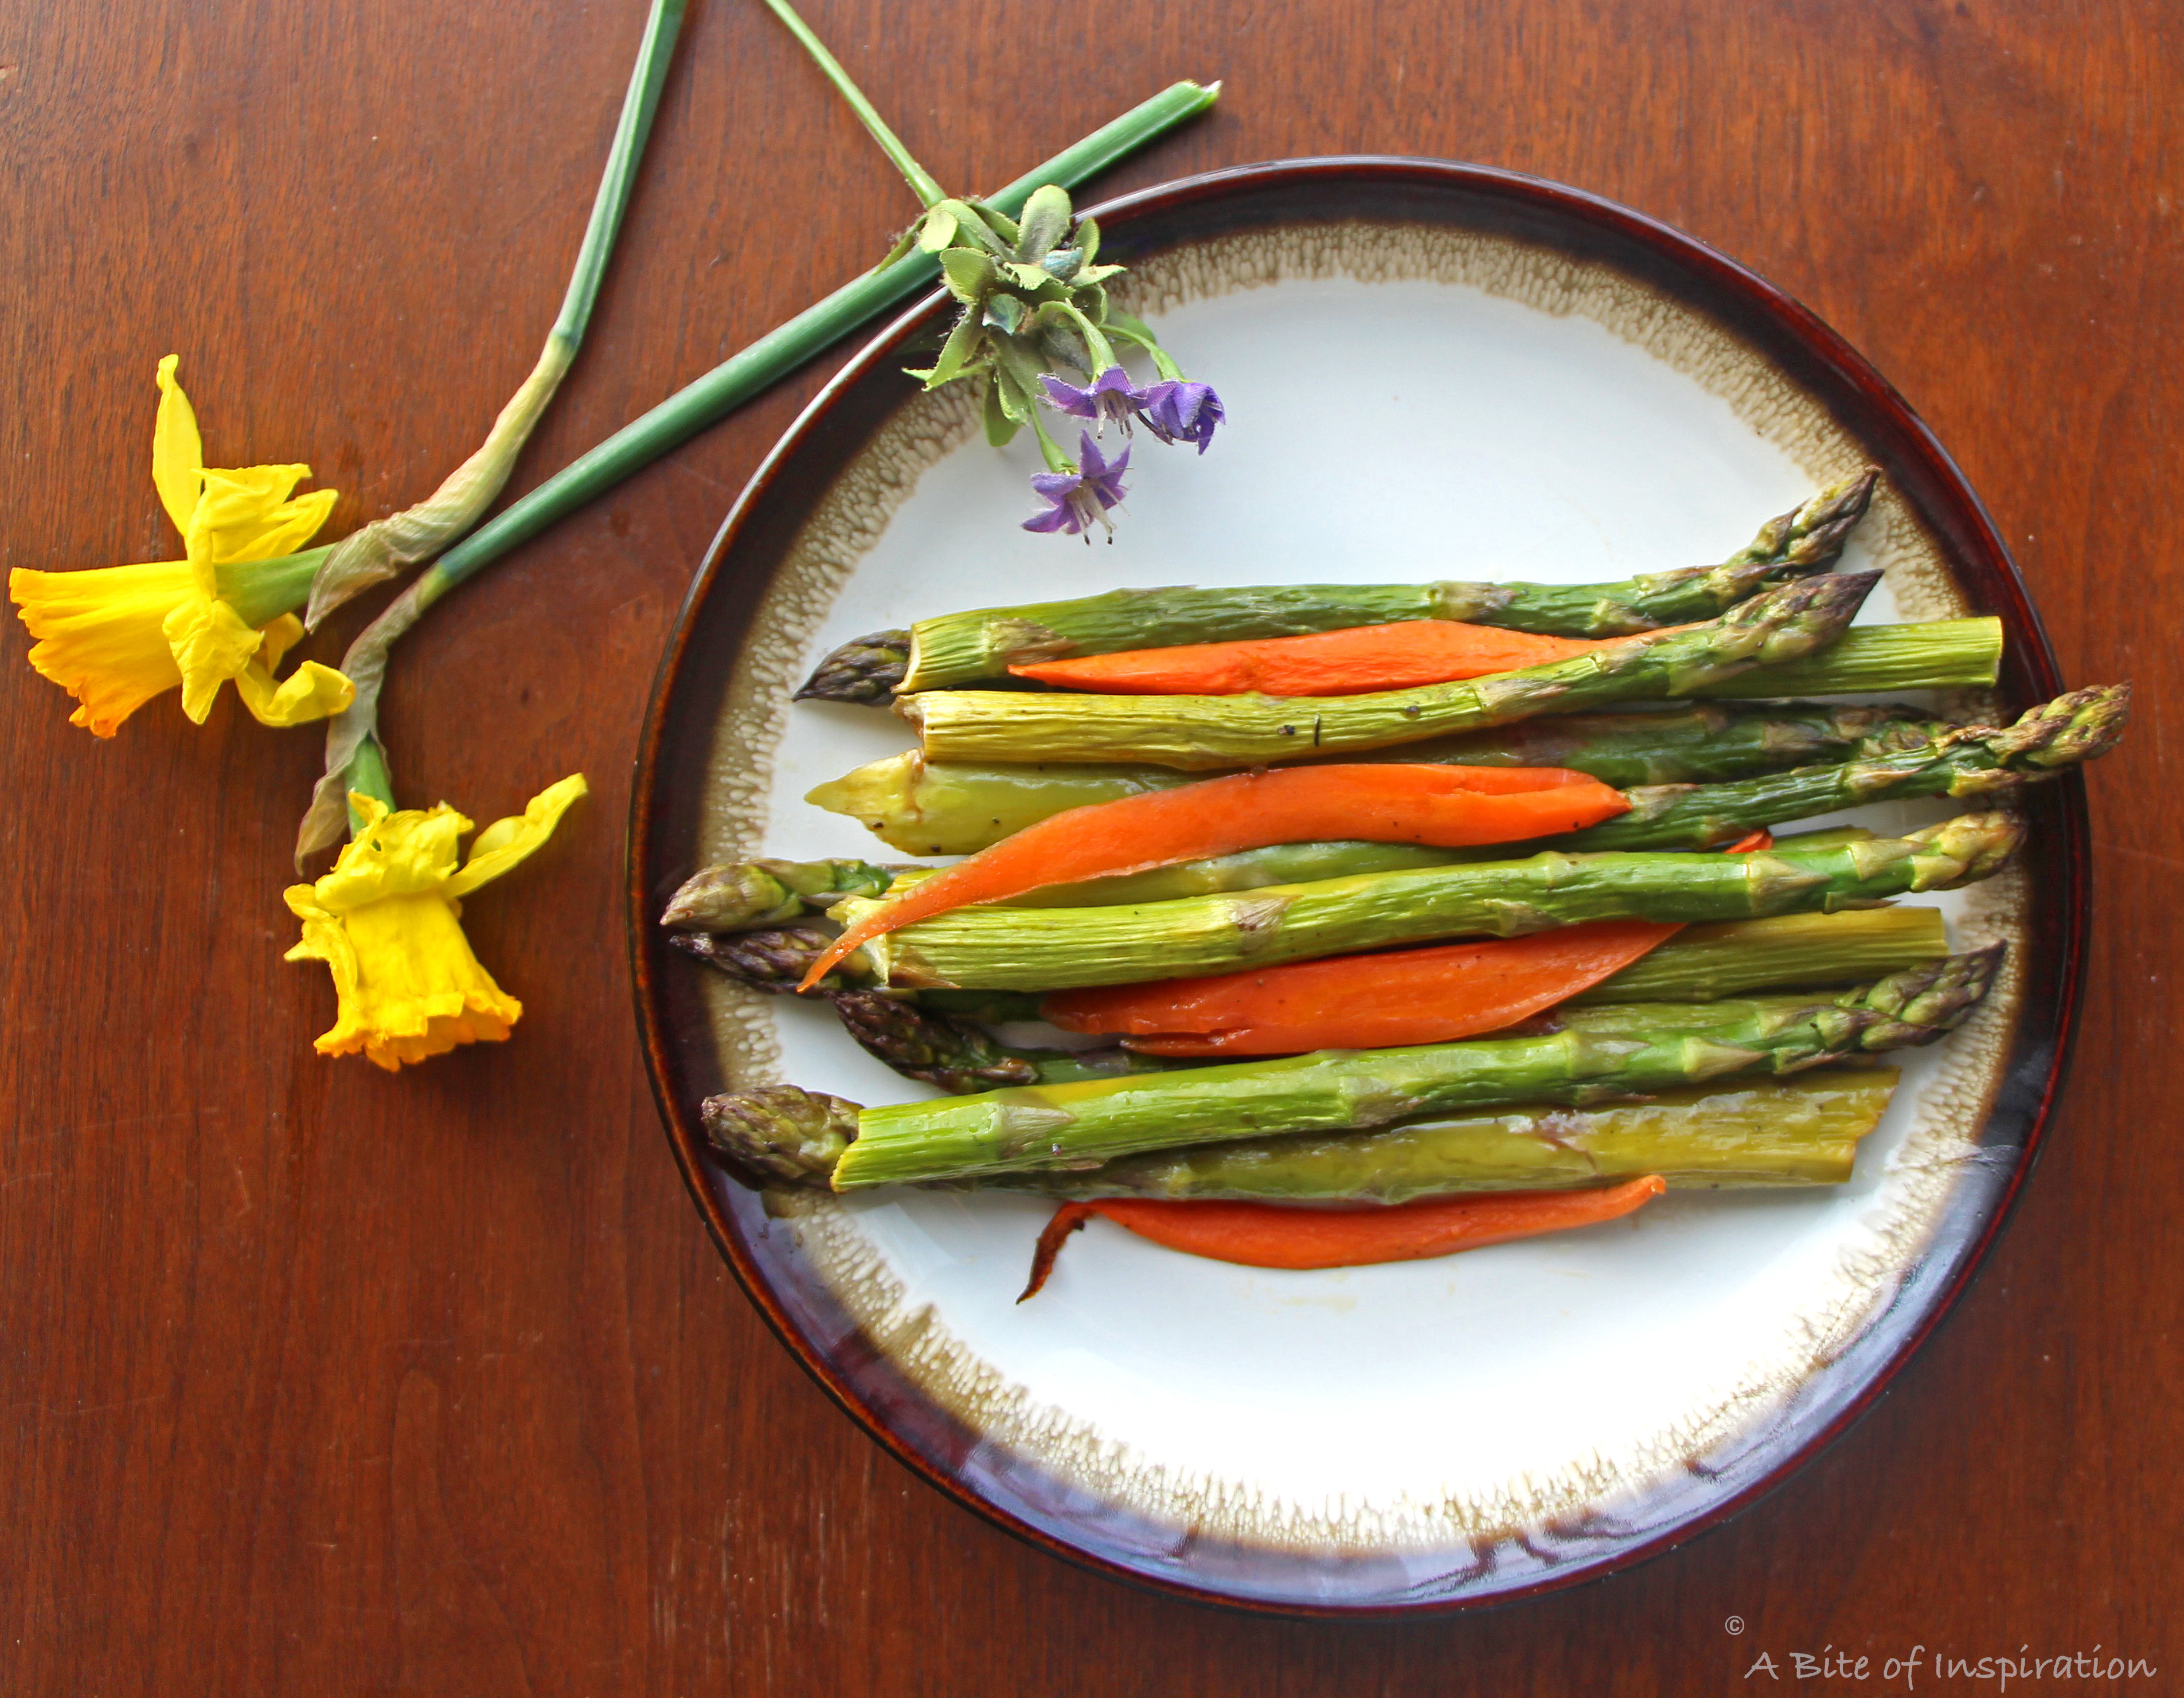 food oddities why asparagus carrots - 28 images ...